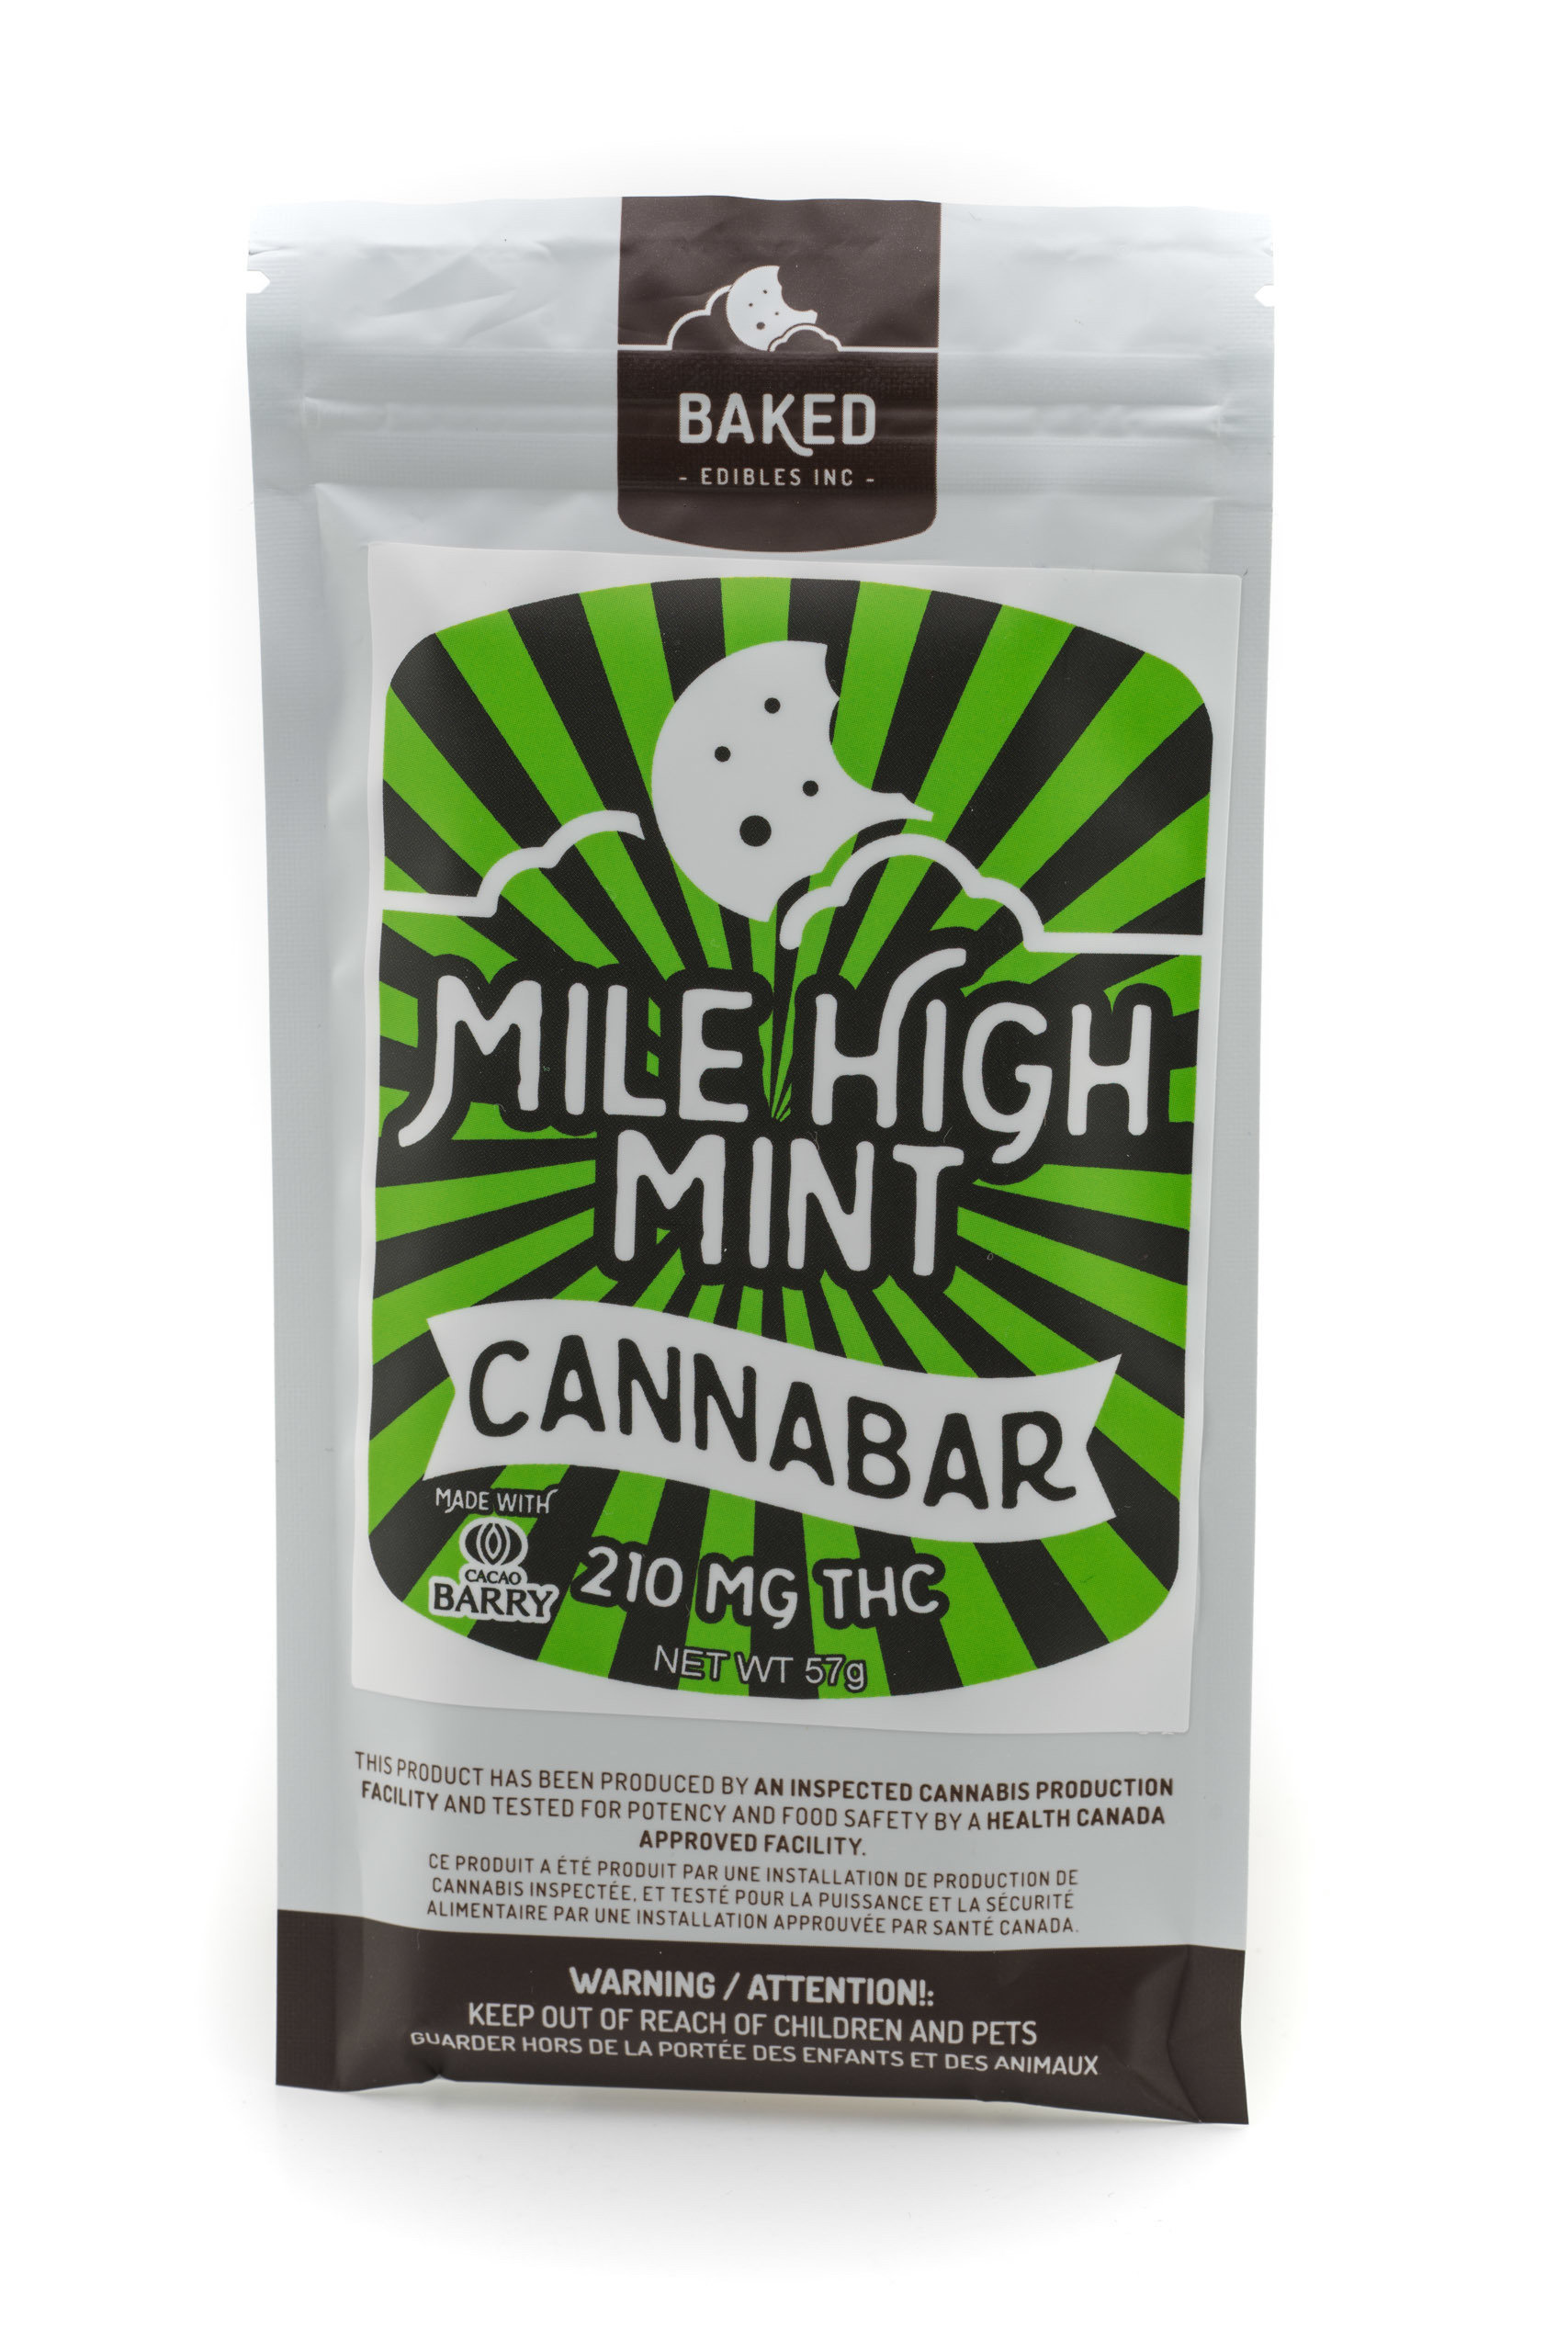 Mile High Mint Cannabar (210mg THC) by Baked Edibles 00044